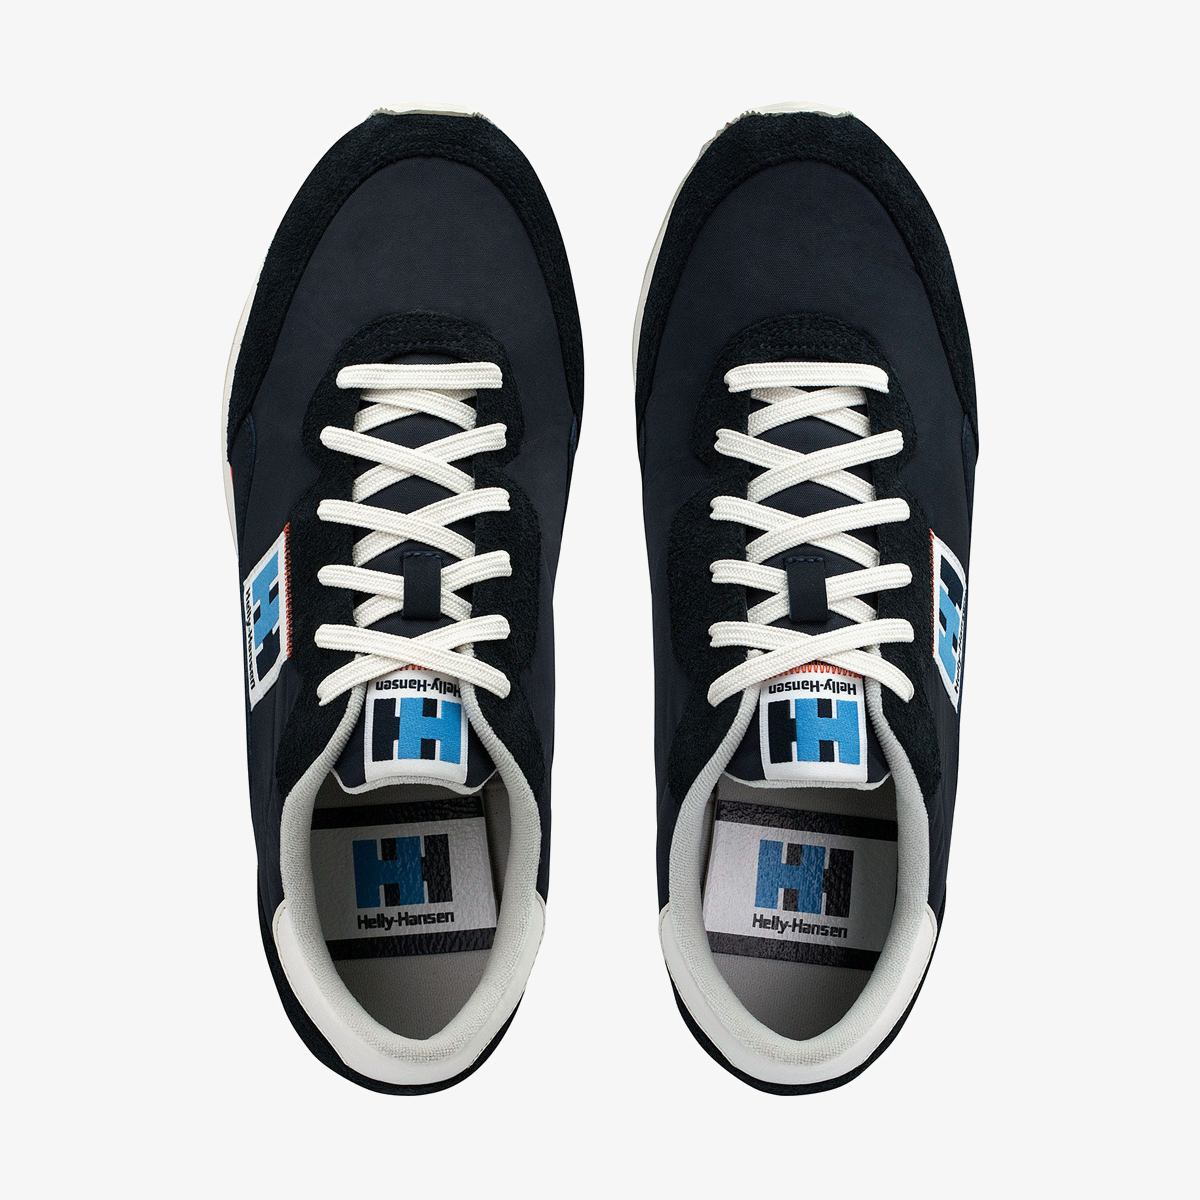 Кроссовки Helly Hansen RIPPLES LOW-CUT SNEAKER 11481-597 фото